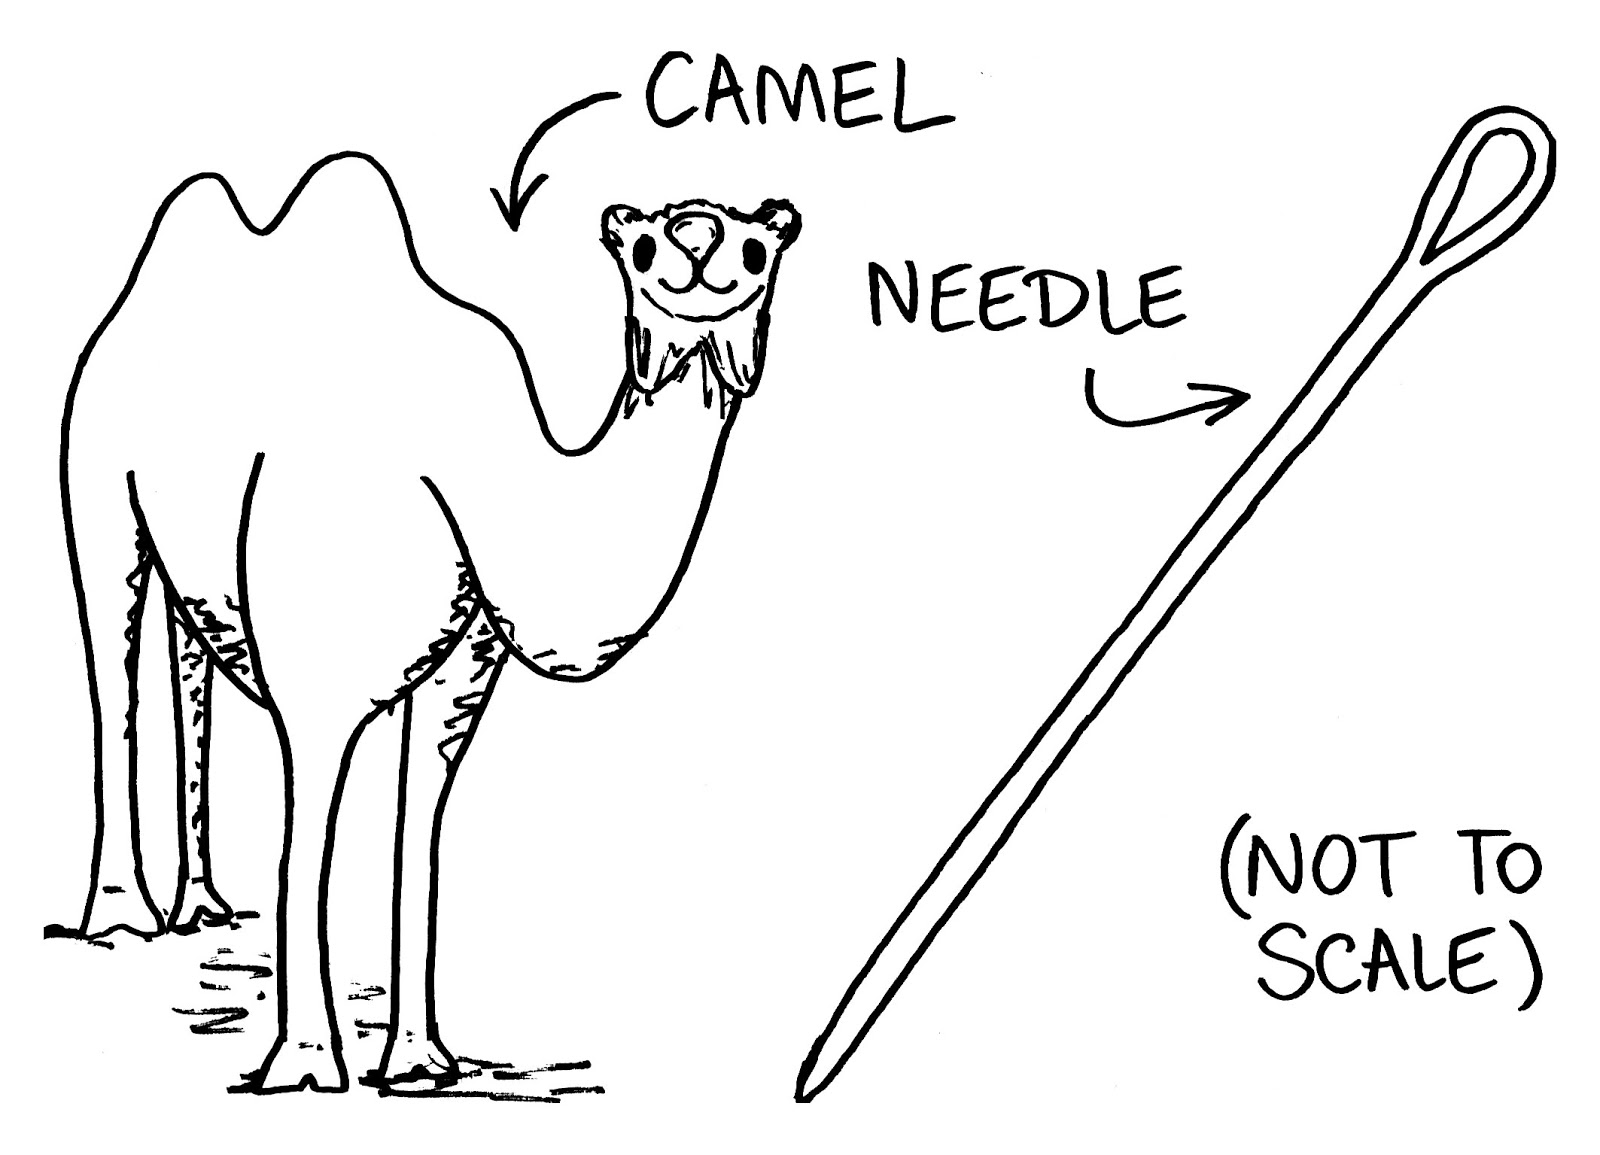 camel-and-needle3.jpg